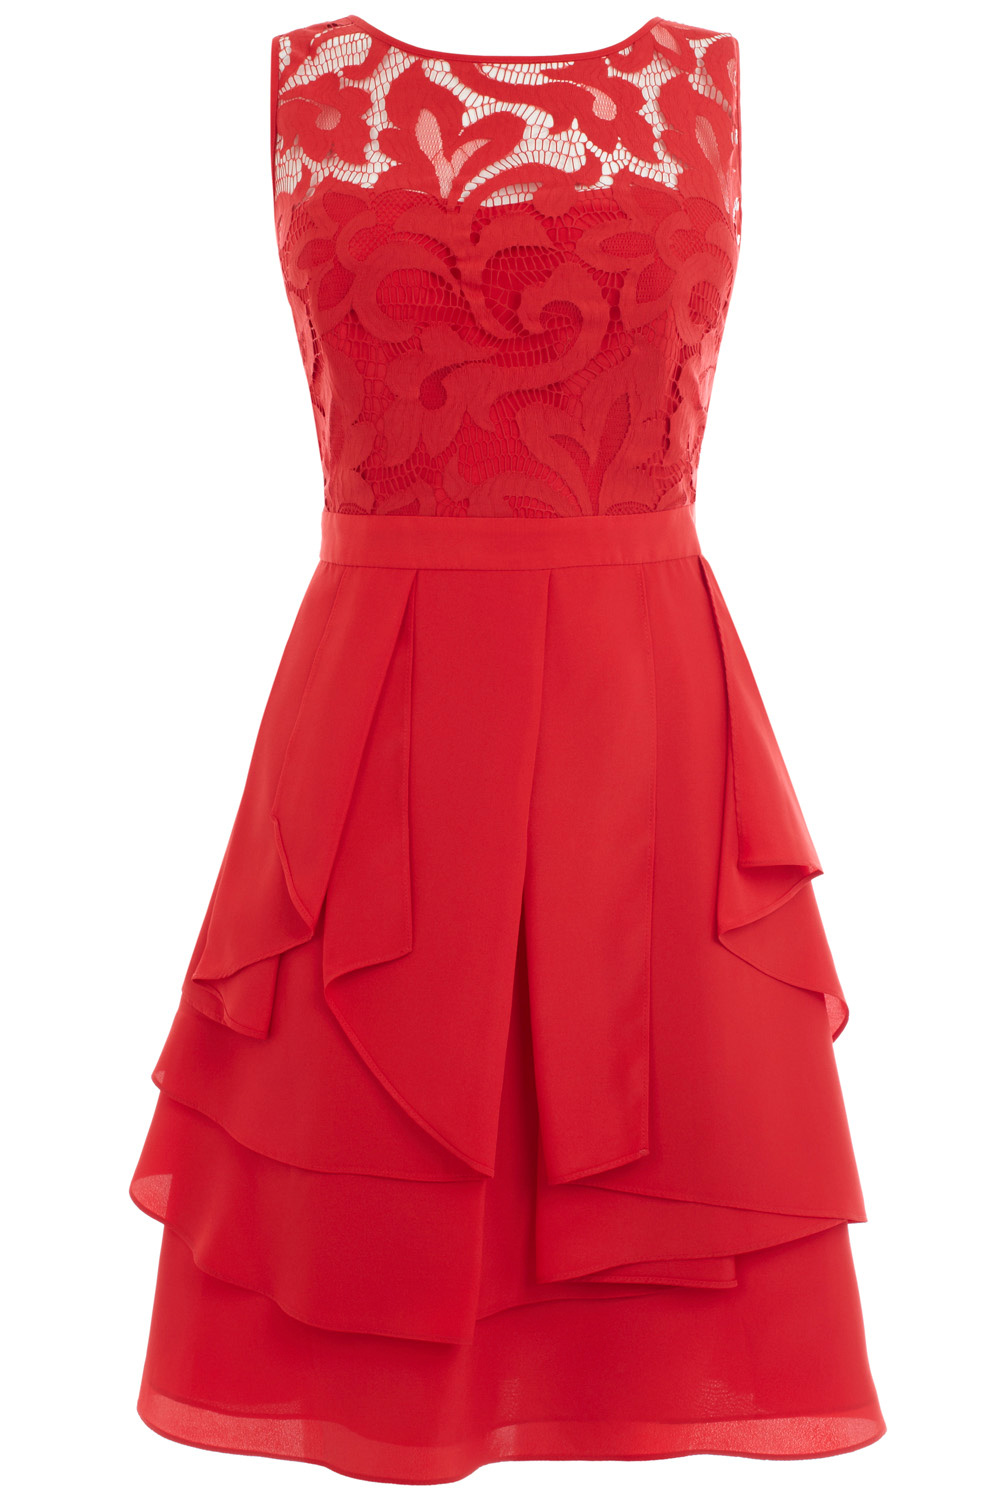 Coast daymee dress in red reds lyst for Teenage dresses for a wedding